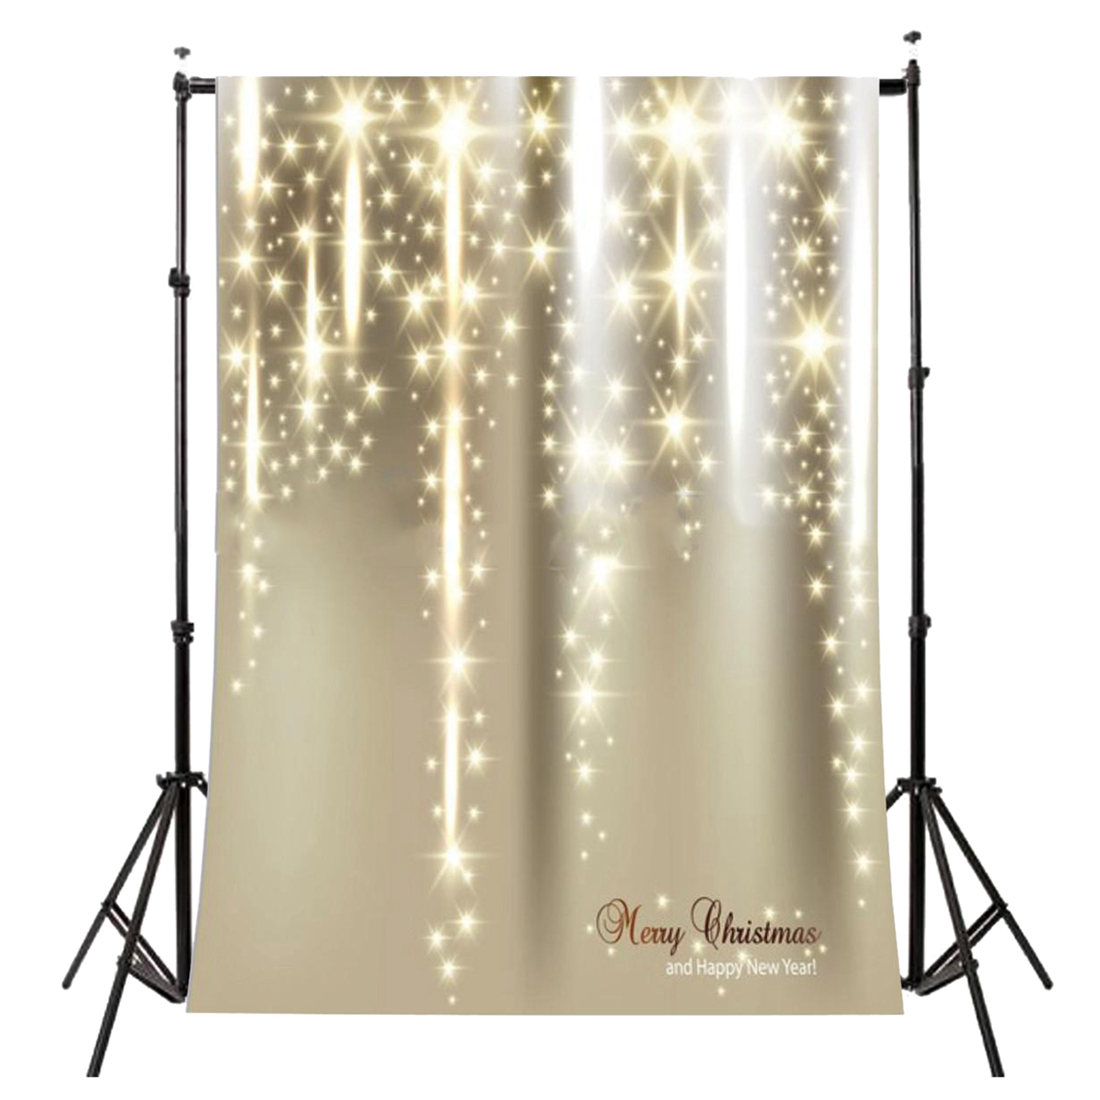 5x7FT Vinyl Photography Backdrop Photo Background, Christmas Starlight